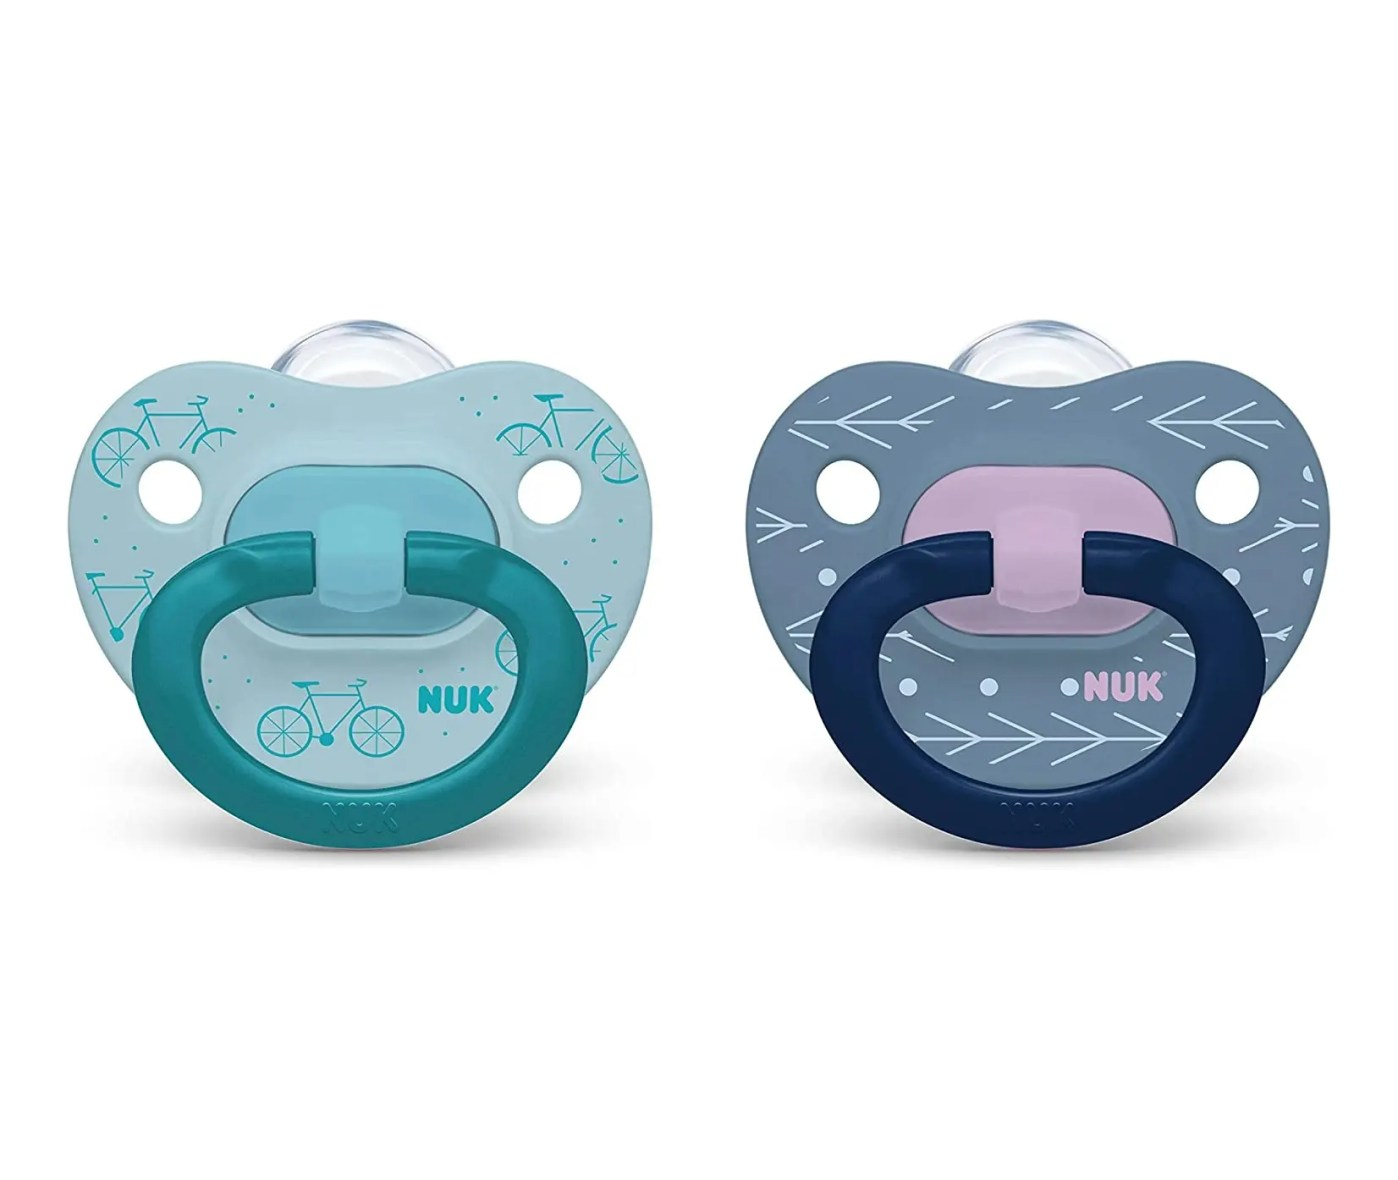 NUK Orthodontic Pacifier Value Pack, Blue&DBlue, 18-36 Months, 2-Pack